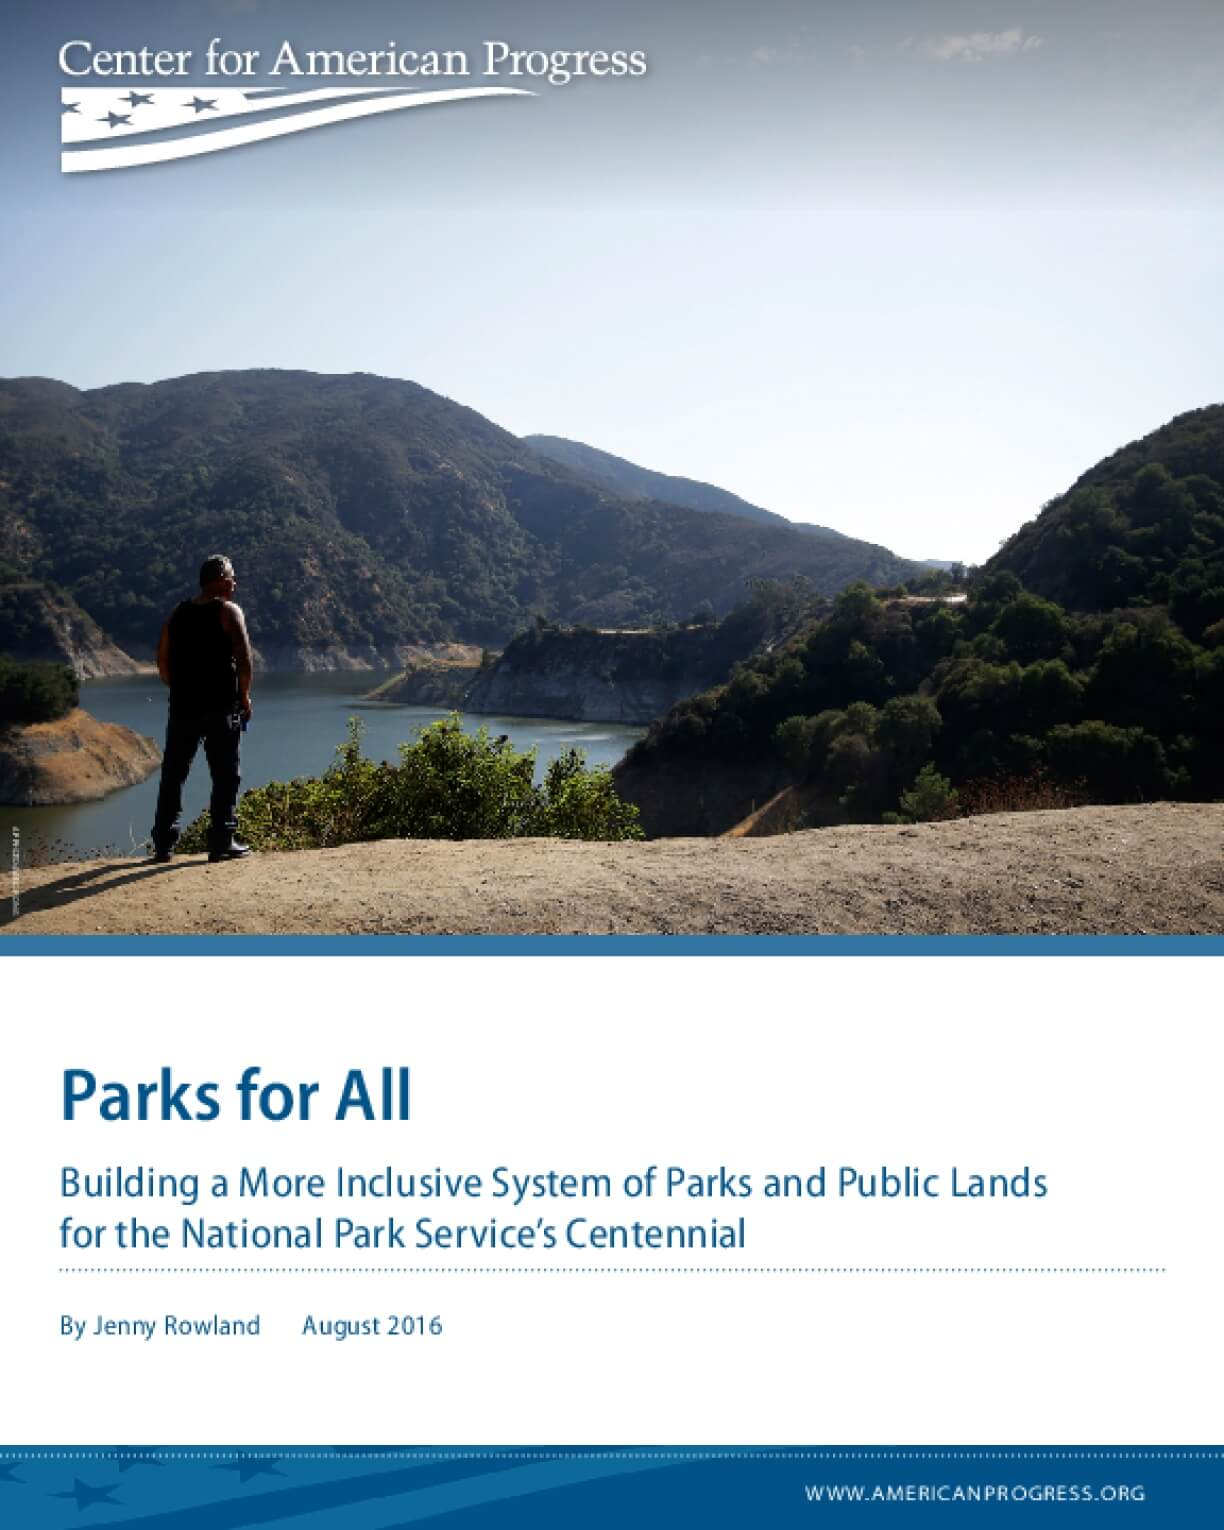 Parks for All: Building a More Inclusive System of Parks and Public Lands for the National Park Service's Centennial